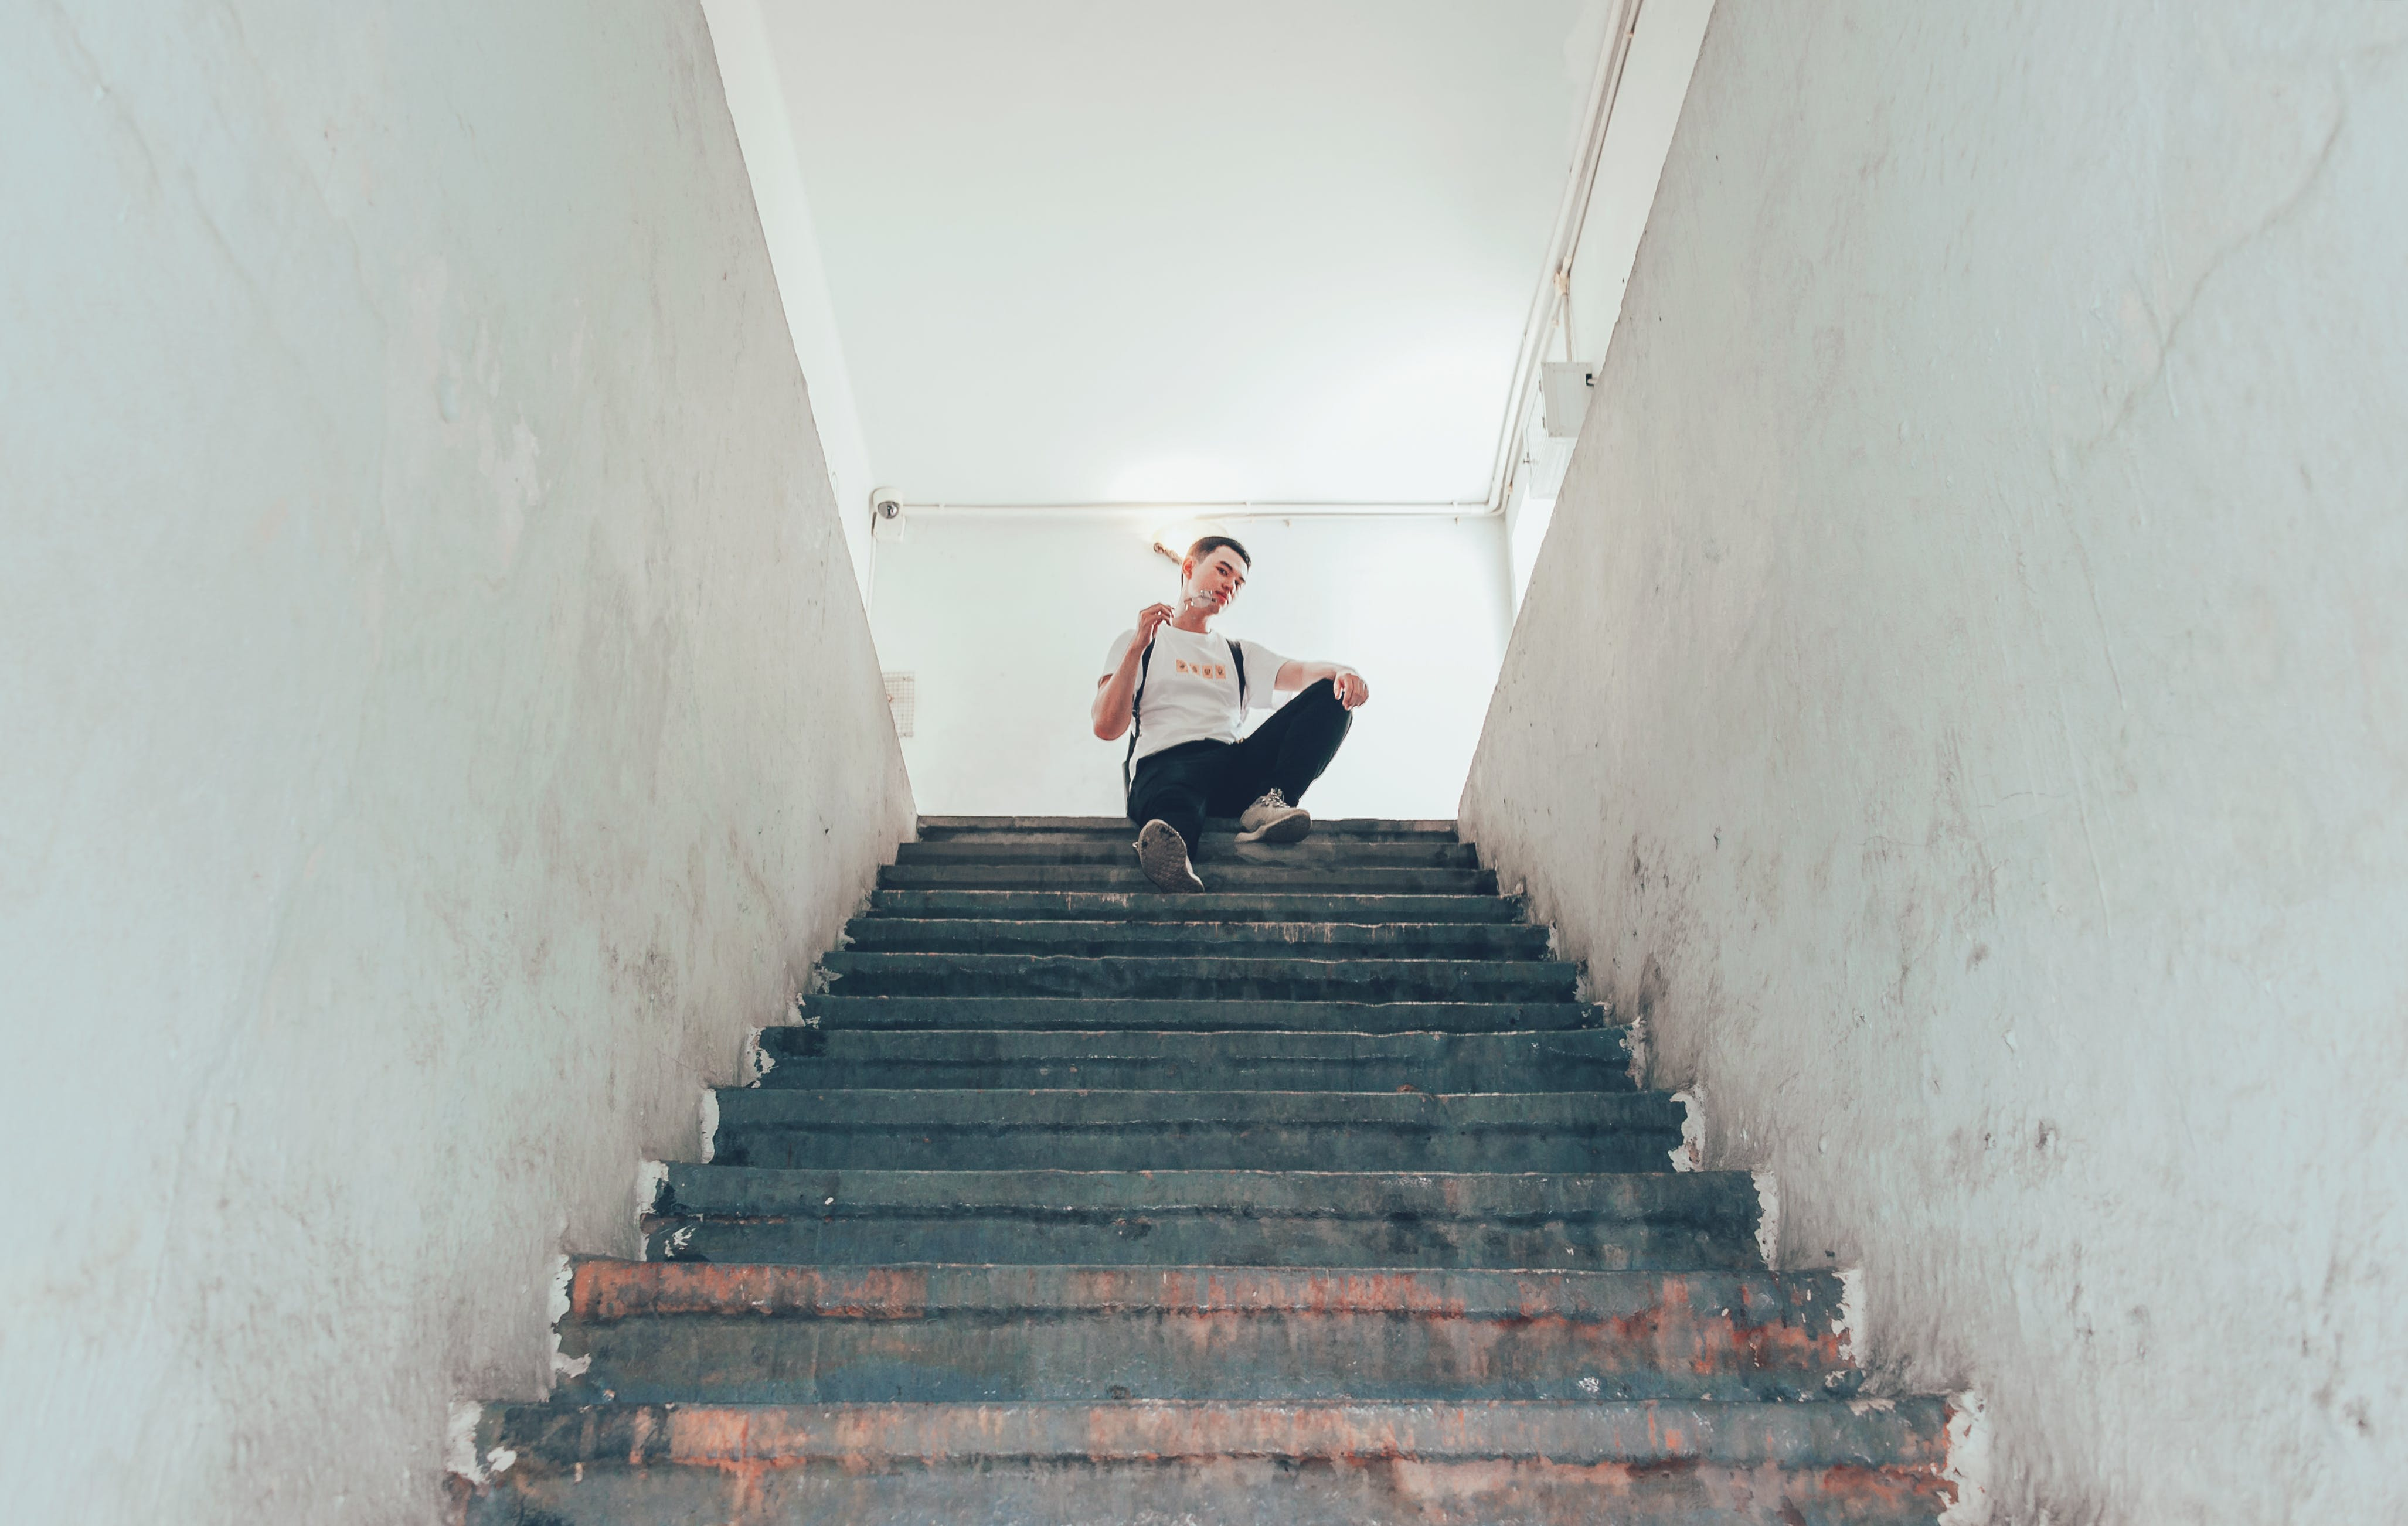 Man In White Top Sitting On Top Of Stairs